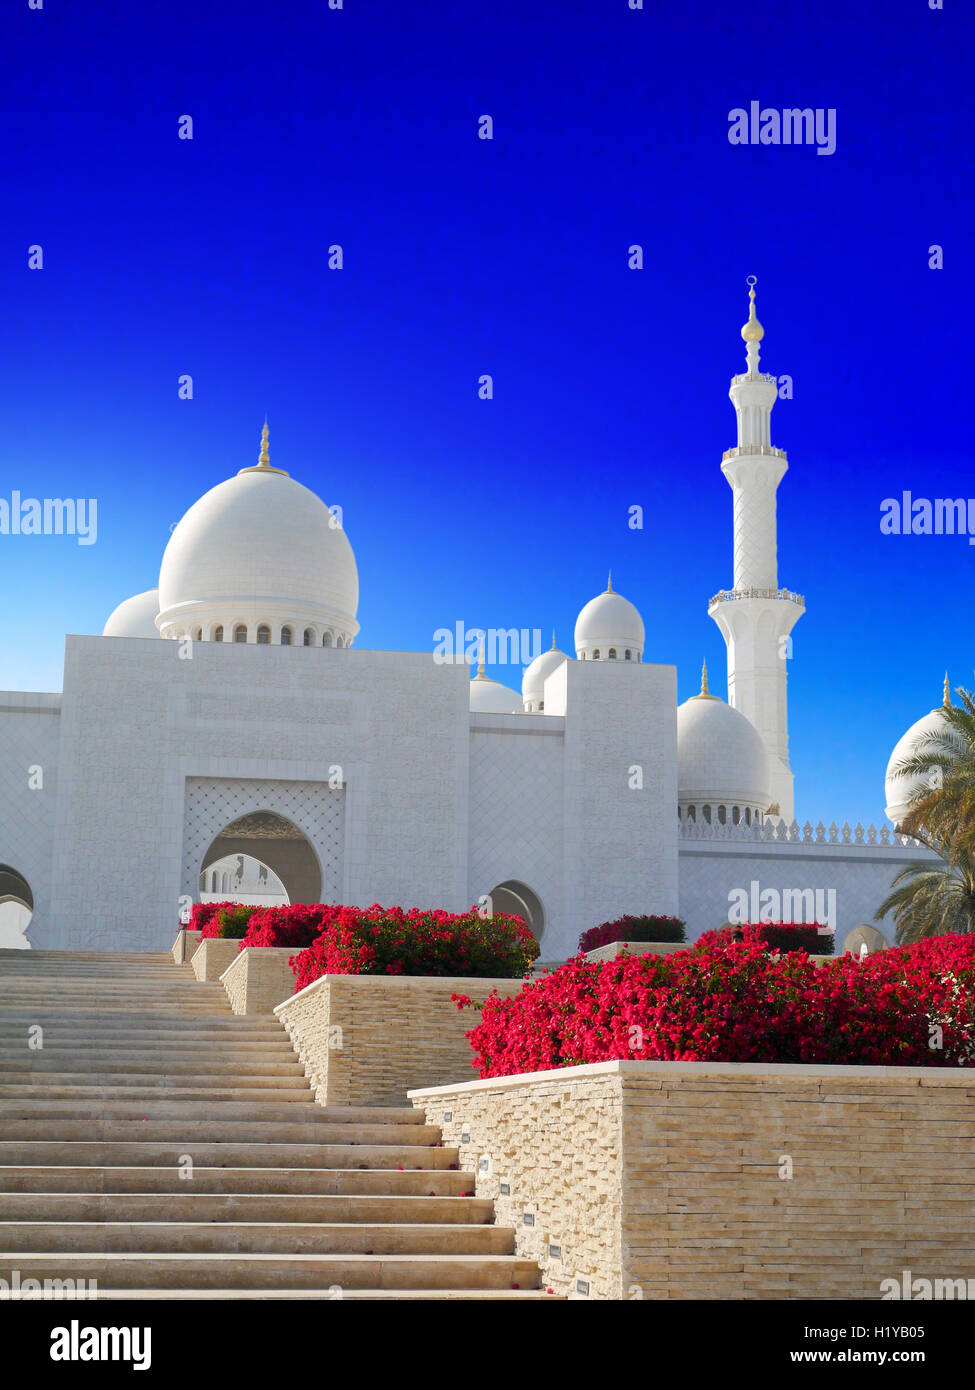 La mosquée Sheikh Zayed à Abu Dhabi Photo Stock